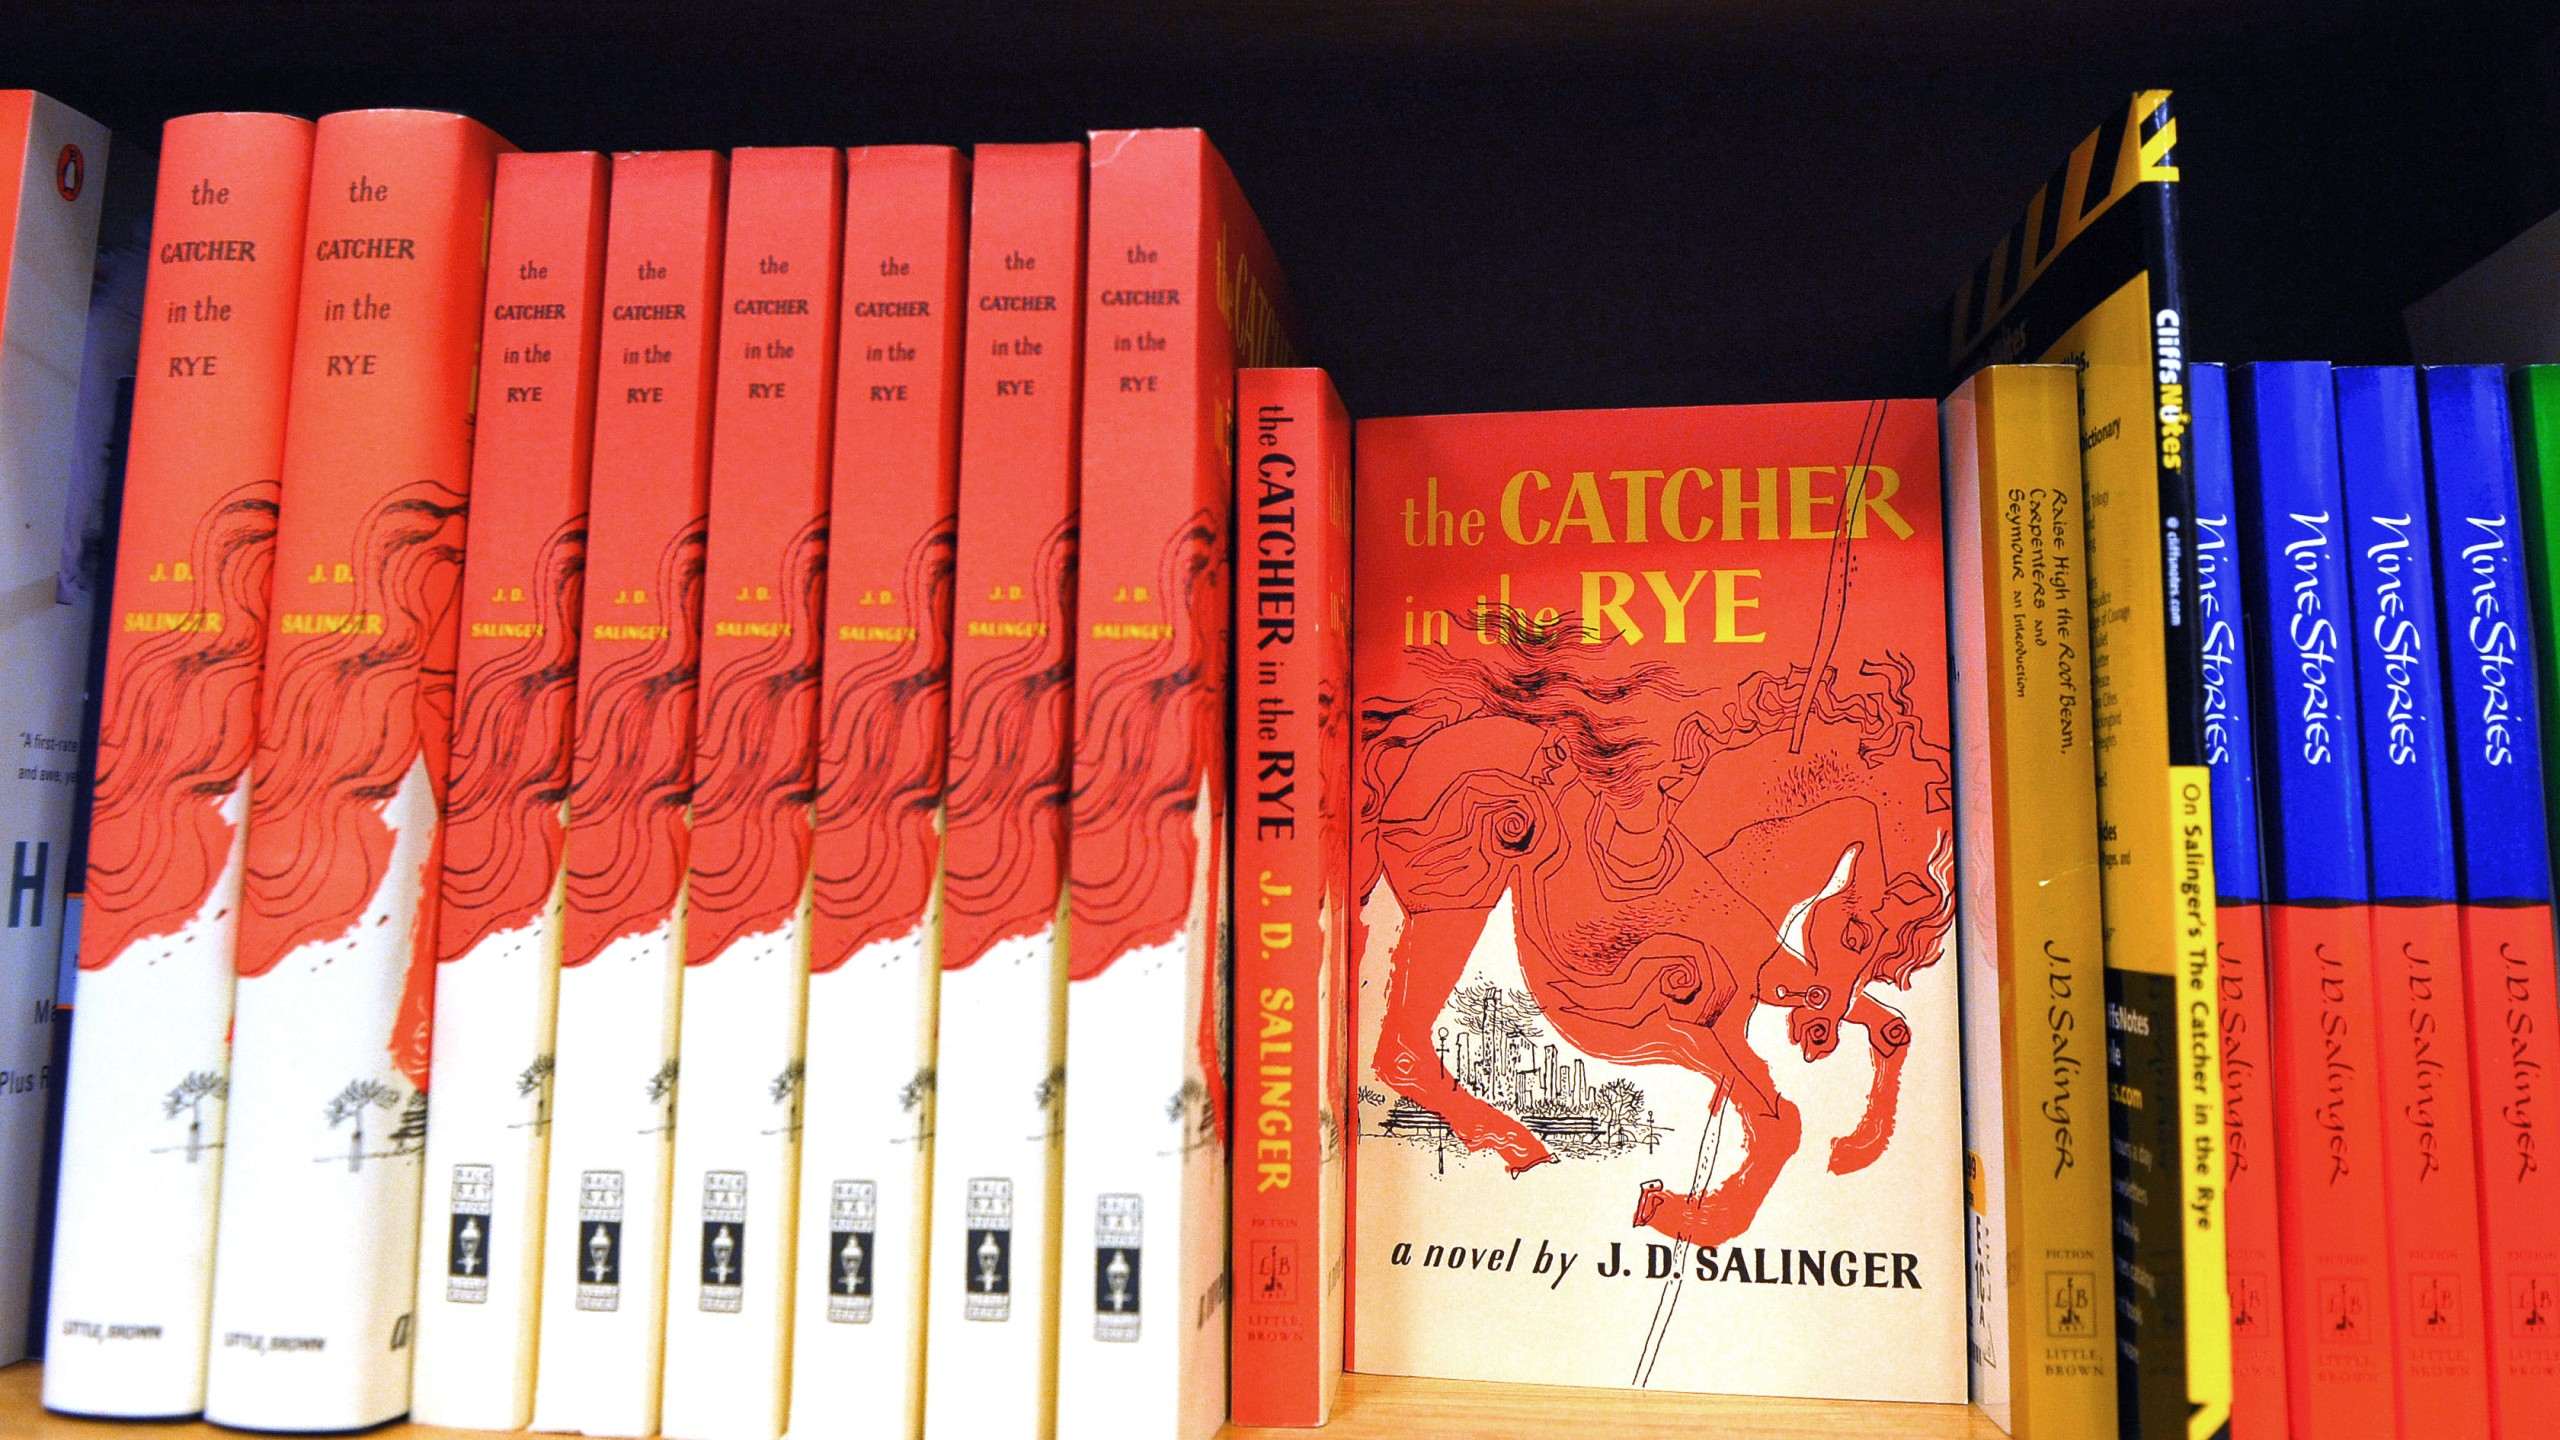 """A January 28, 2010 photo shows a copies of """"The Catcher in the Rye"""" by author J.D. Salinger at a bookstore in Washington, DC. (Credit: MANDEL NGAN/AFP/Getty Images)"""